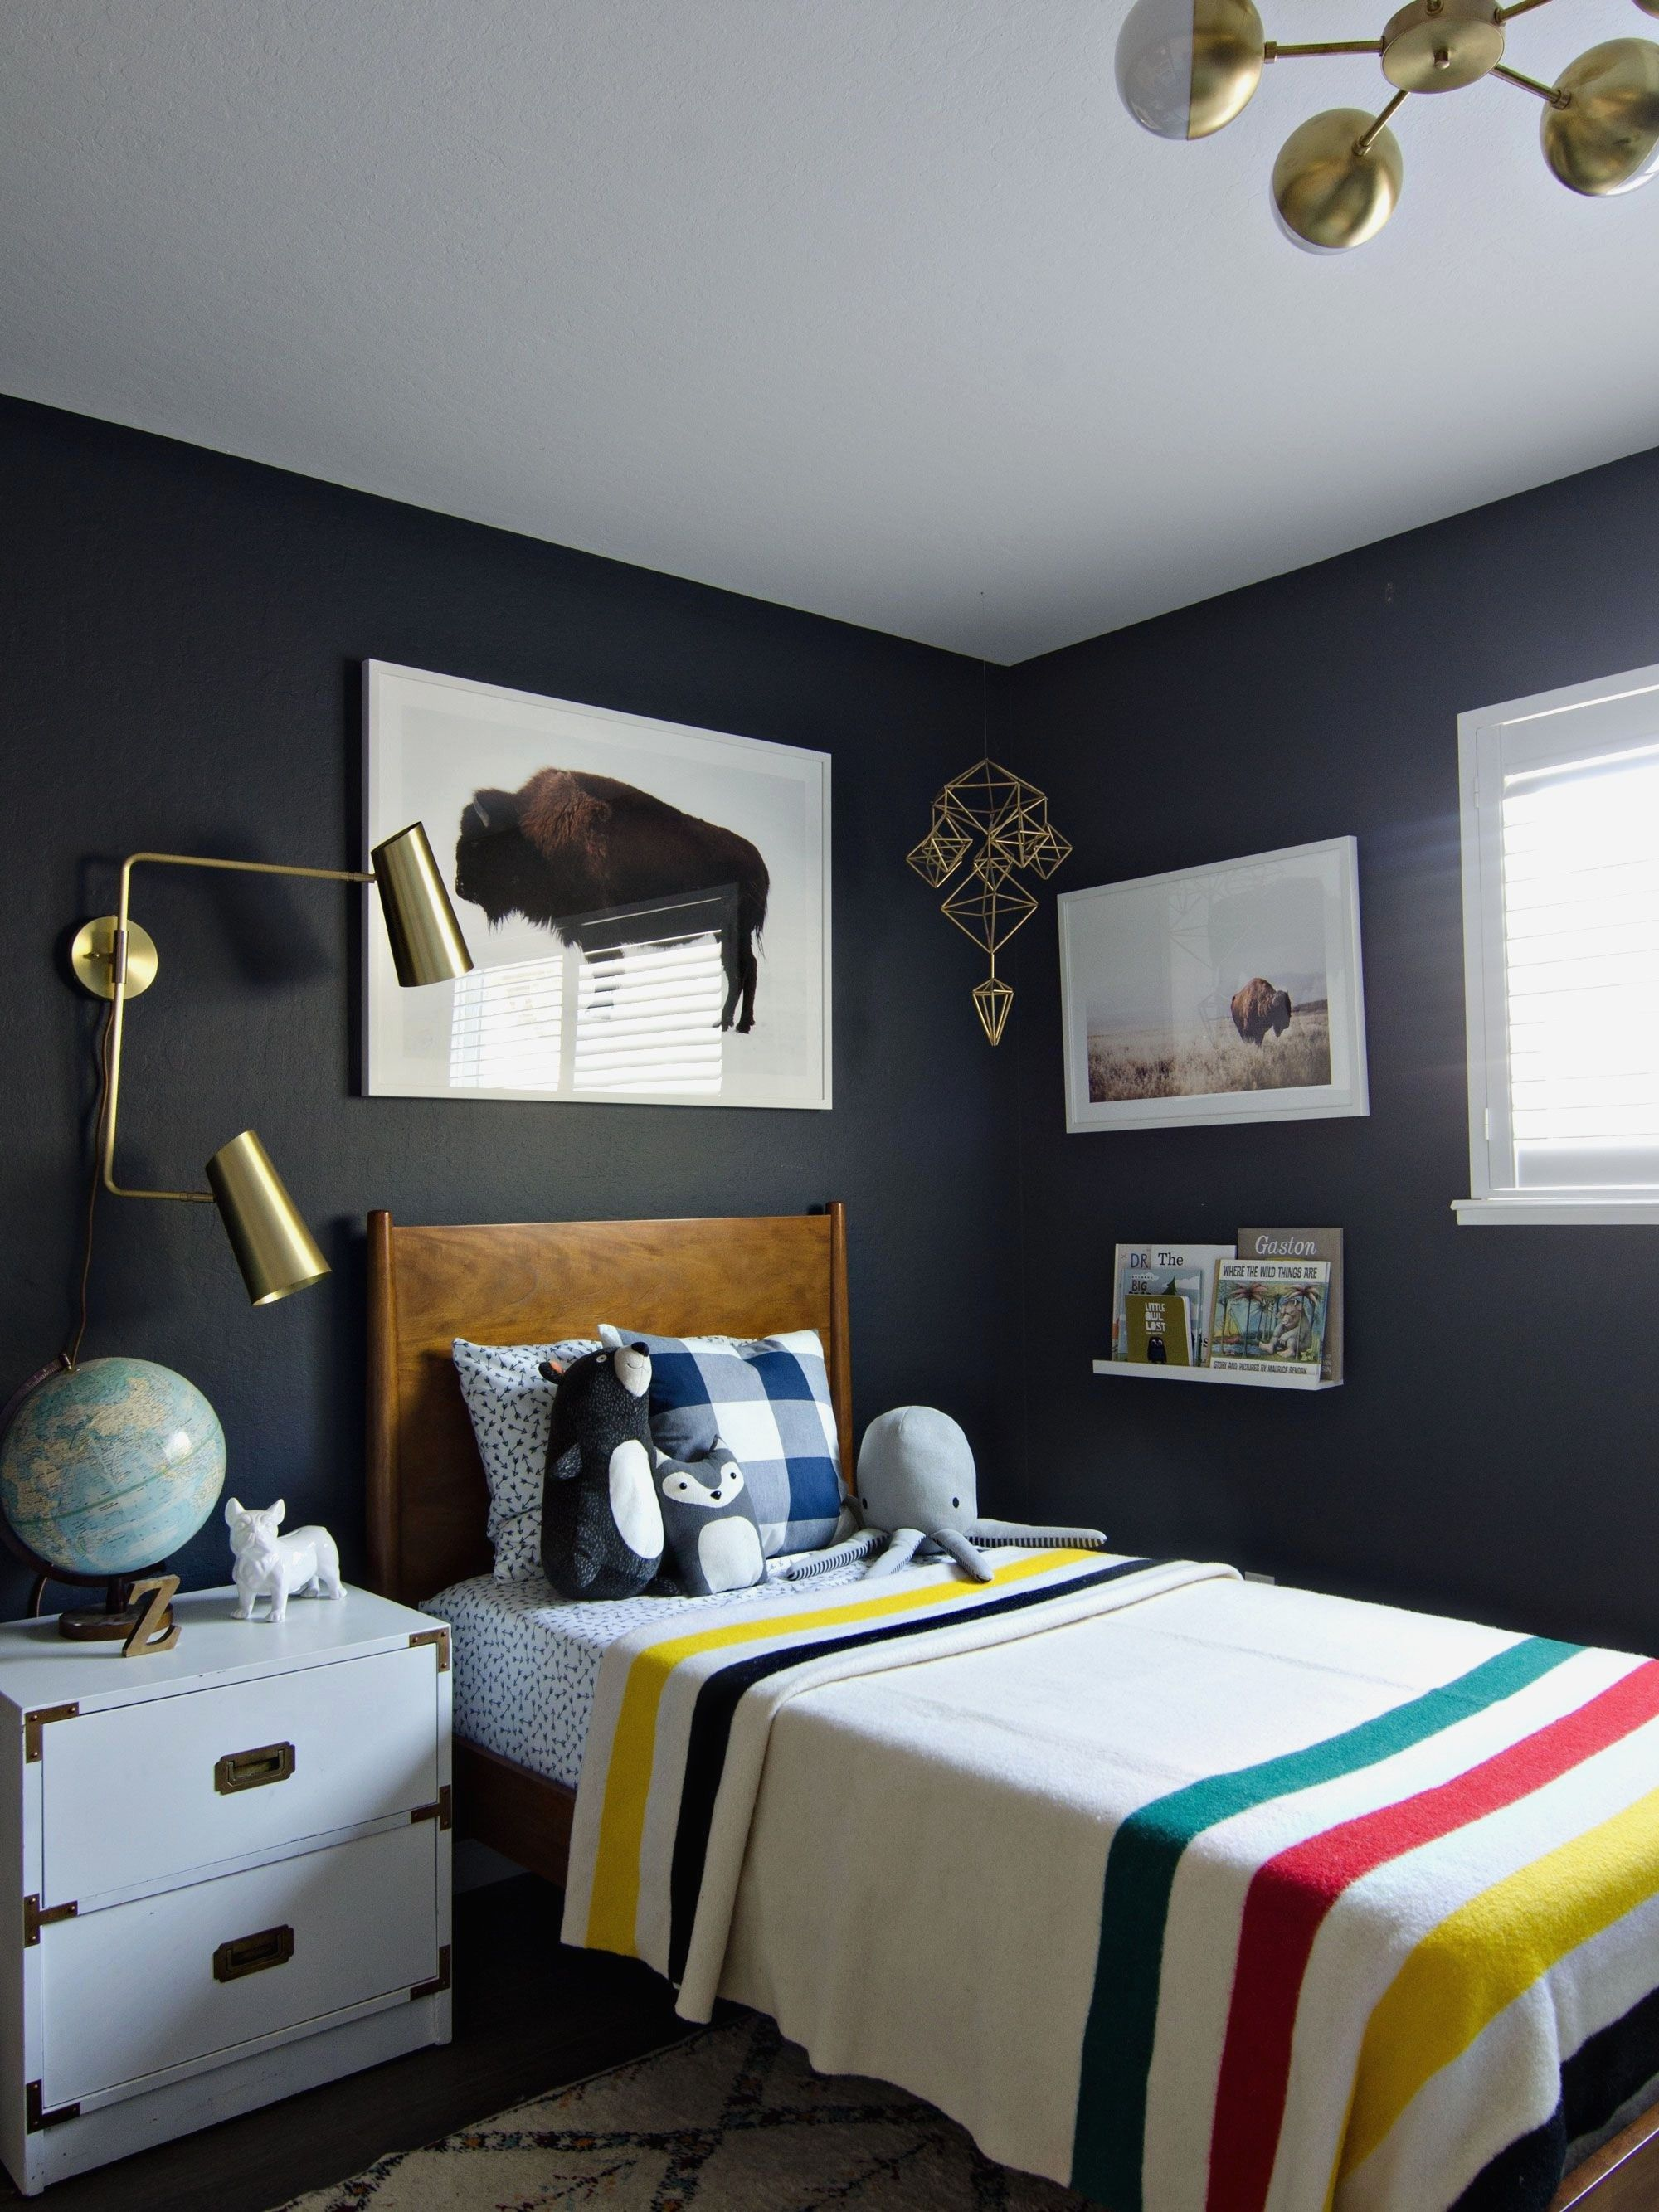 Snazzy Bedroom Pictures  June, 2018